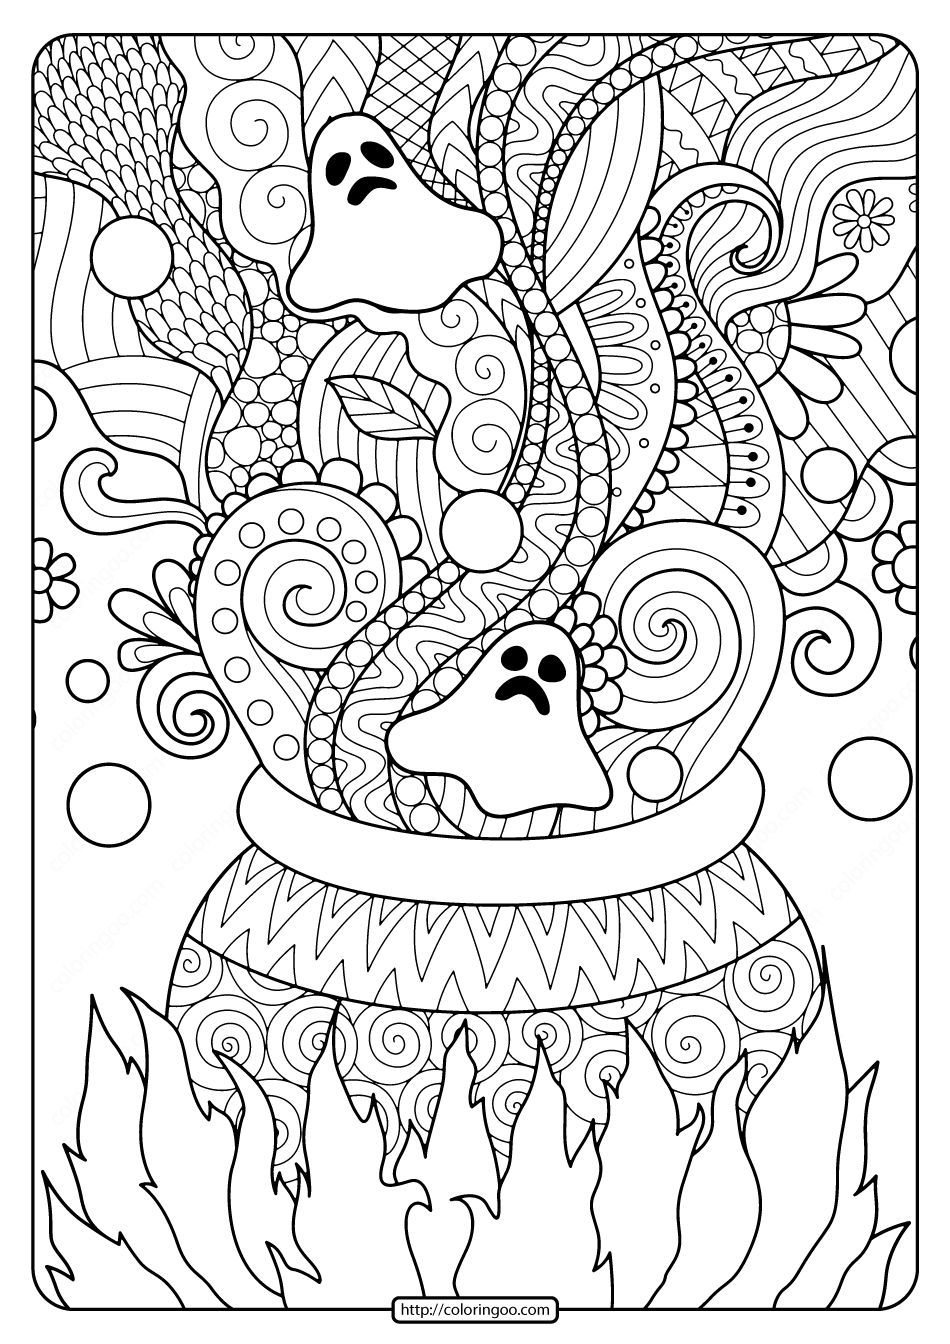 Printable Ghosts and Cauldron Coloring Pages